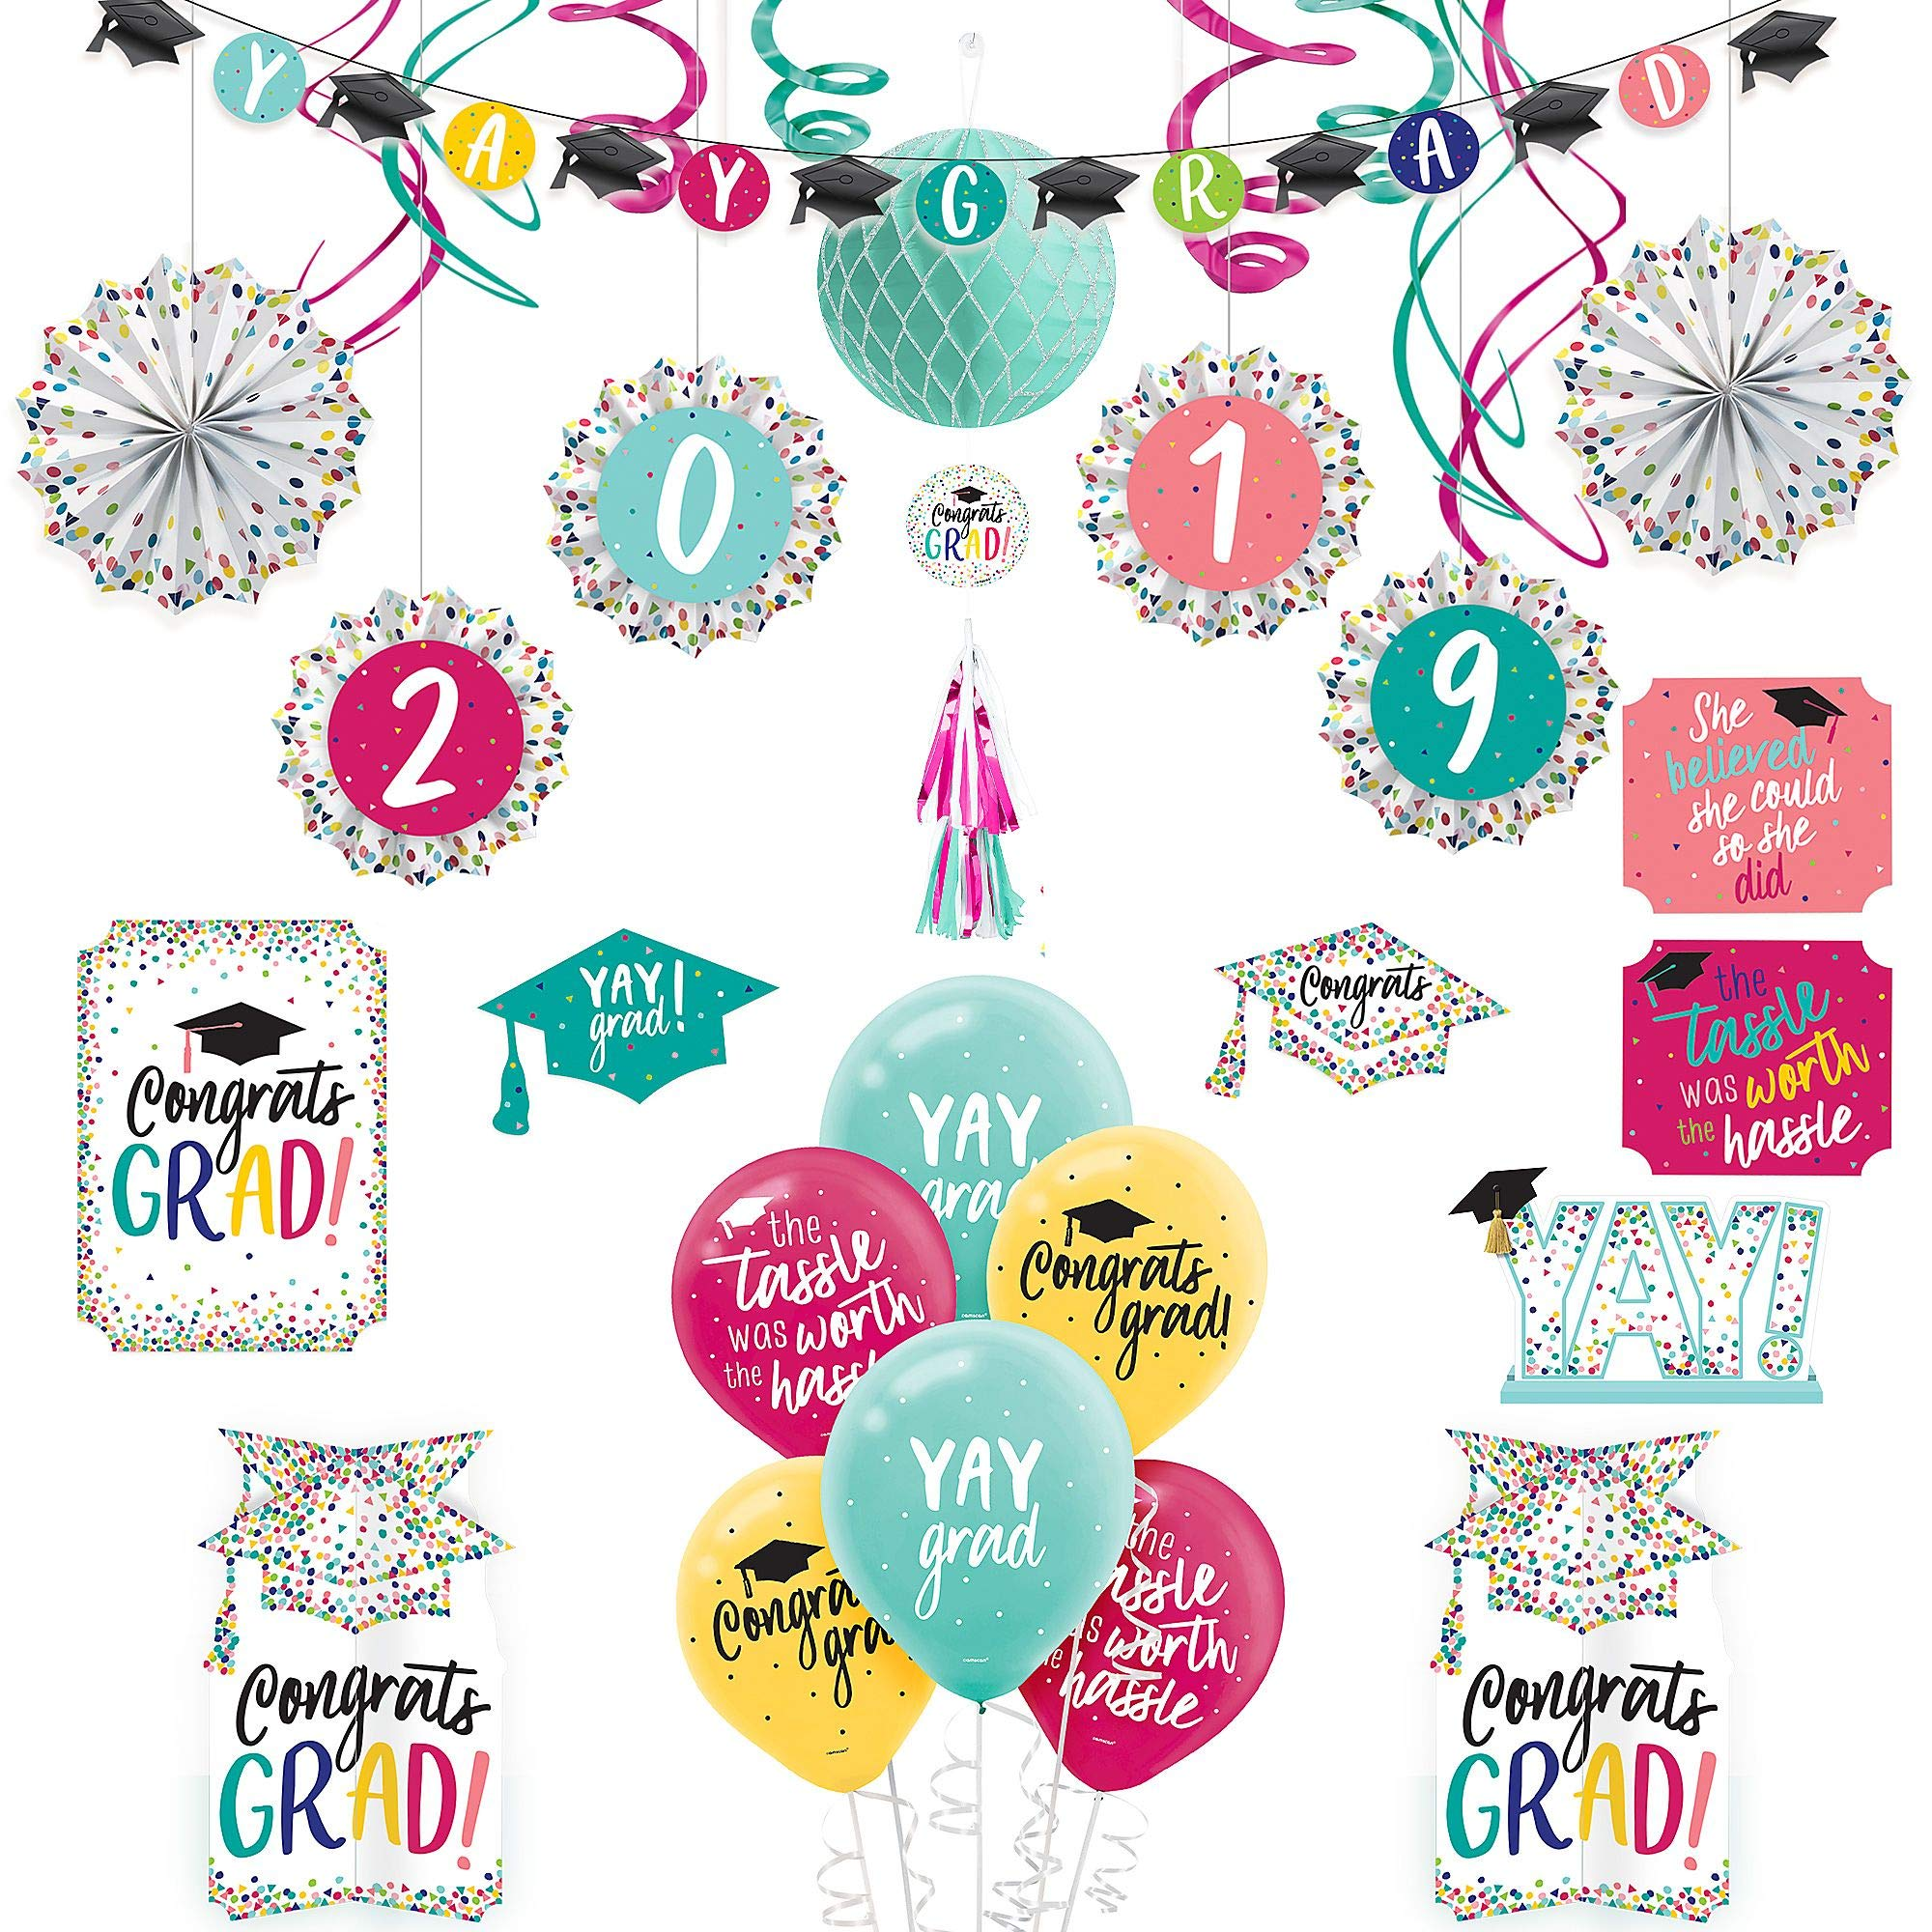 Party City Yay Grad Graduation Room Decorating Kit, Includes Balloons, Paper Fans, Swirls, and a Honeycomb Ball